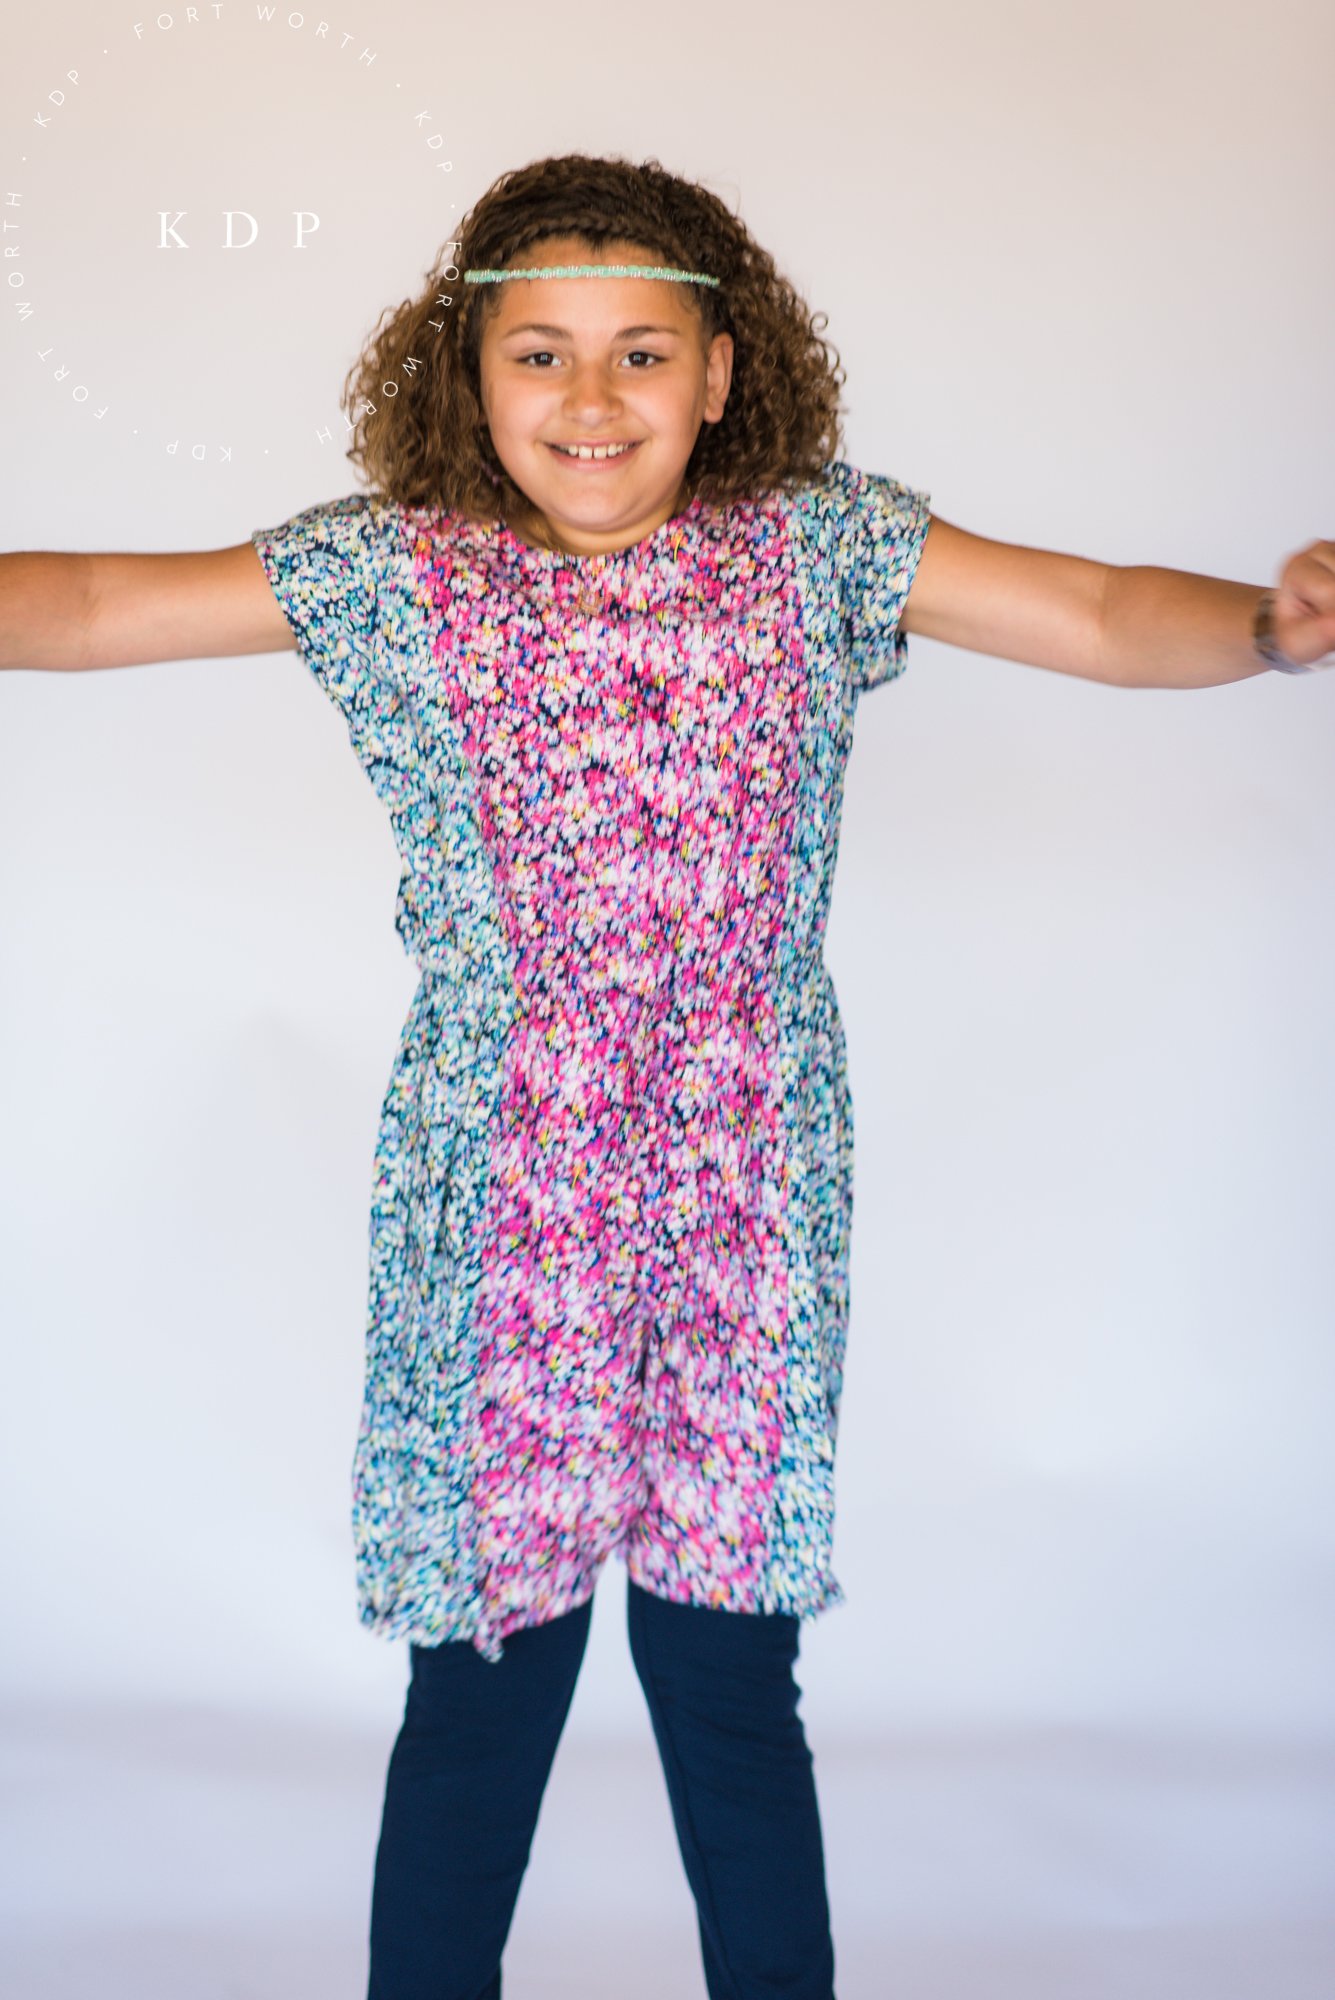 Find this dress and leggings at Gap Kids in Southlake